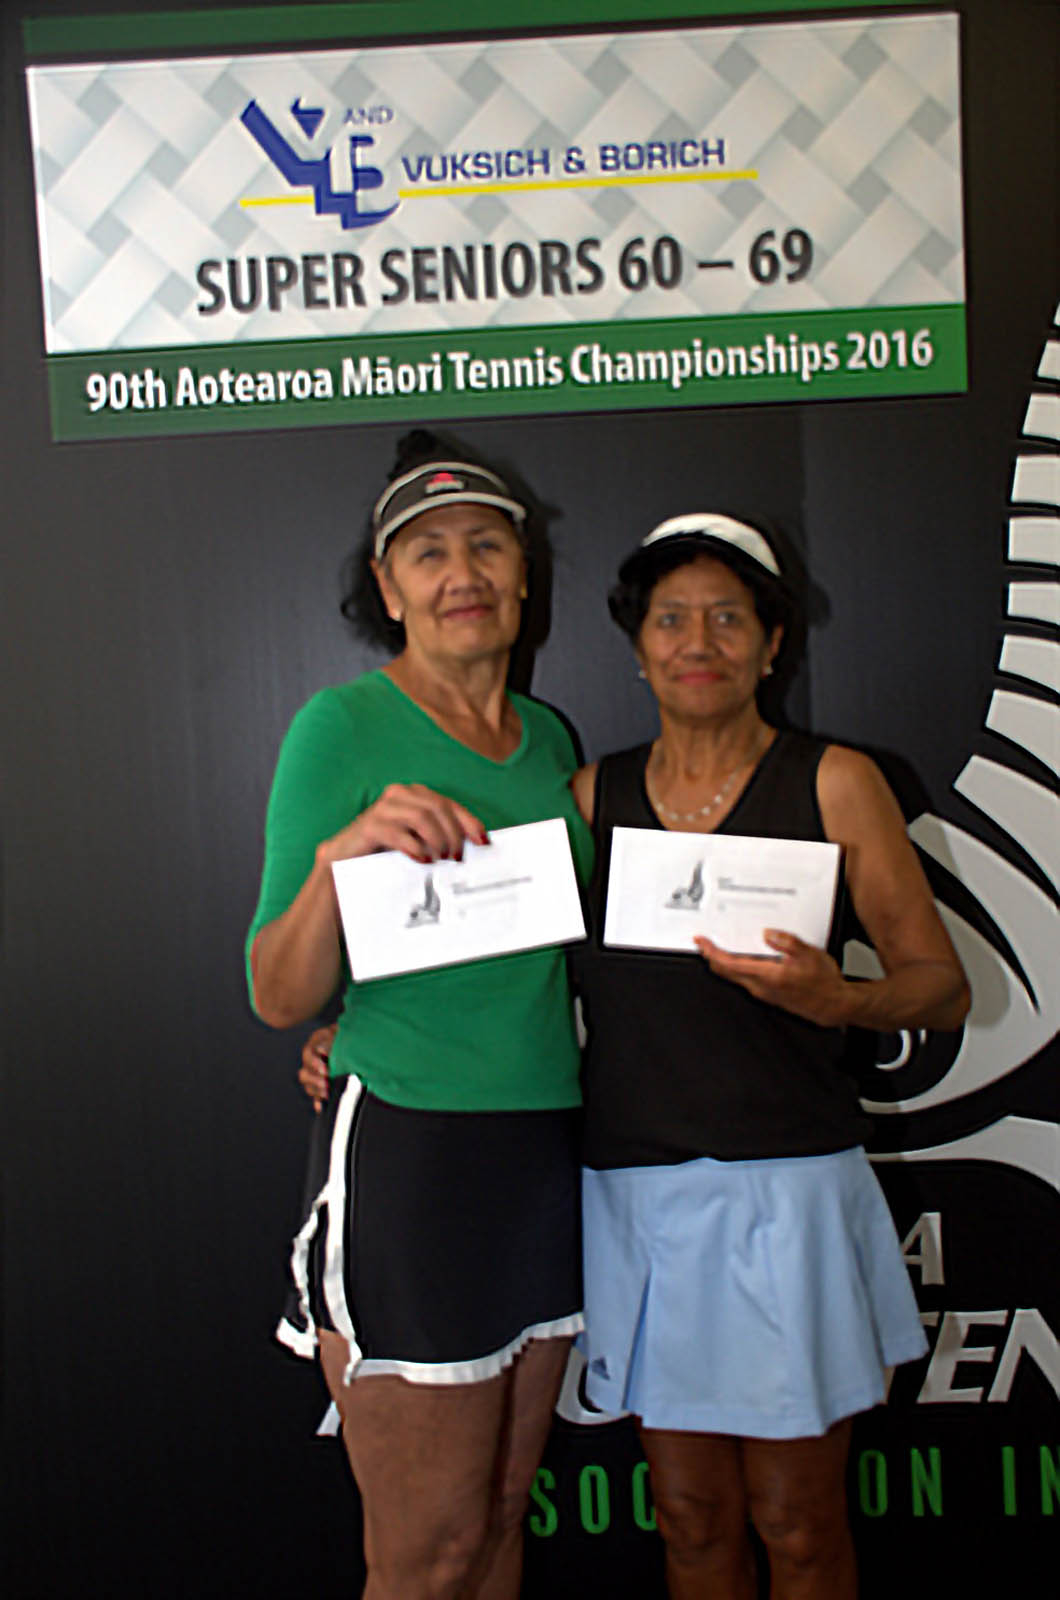 60-69 Womens Doubles Winners - Veronica Vercoe and Marion Mills